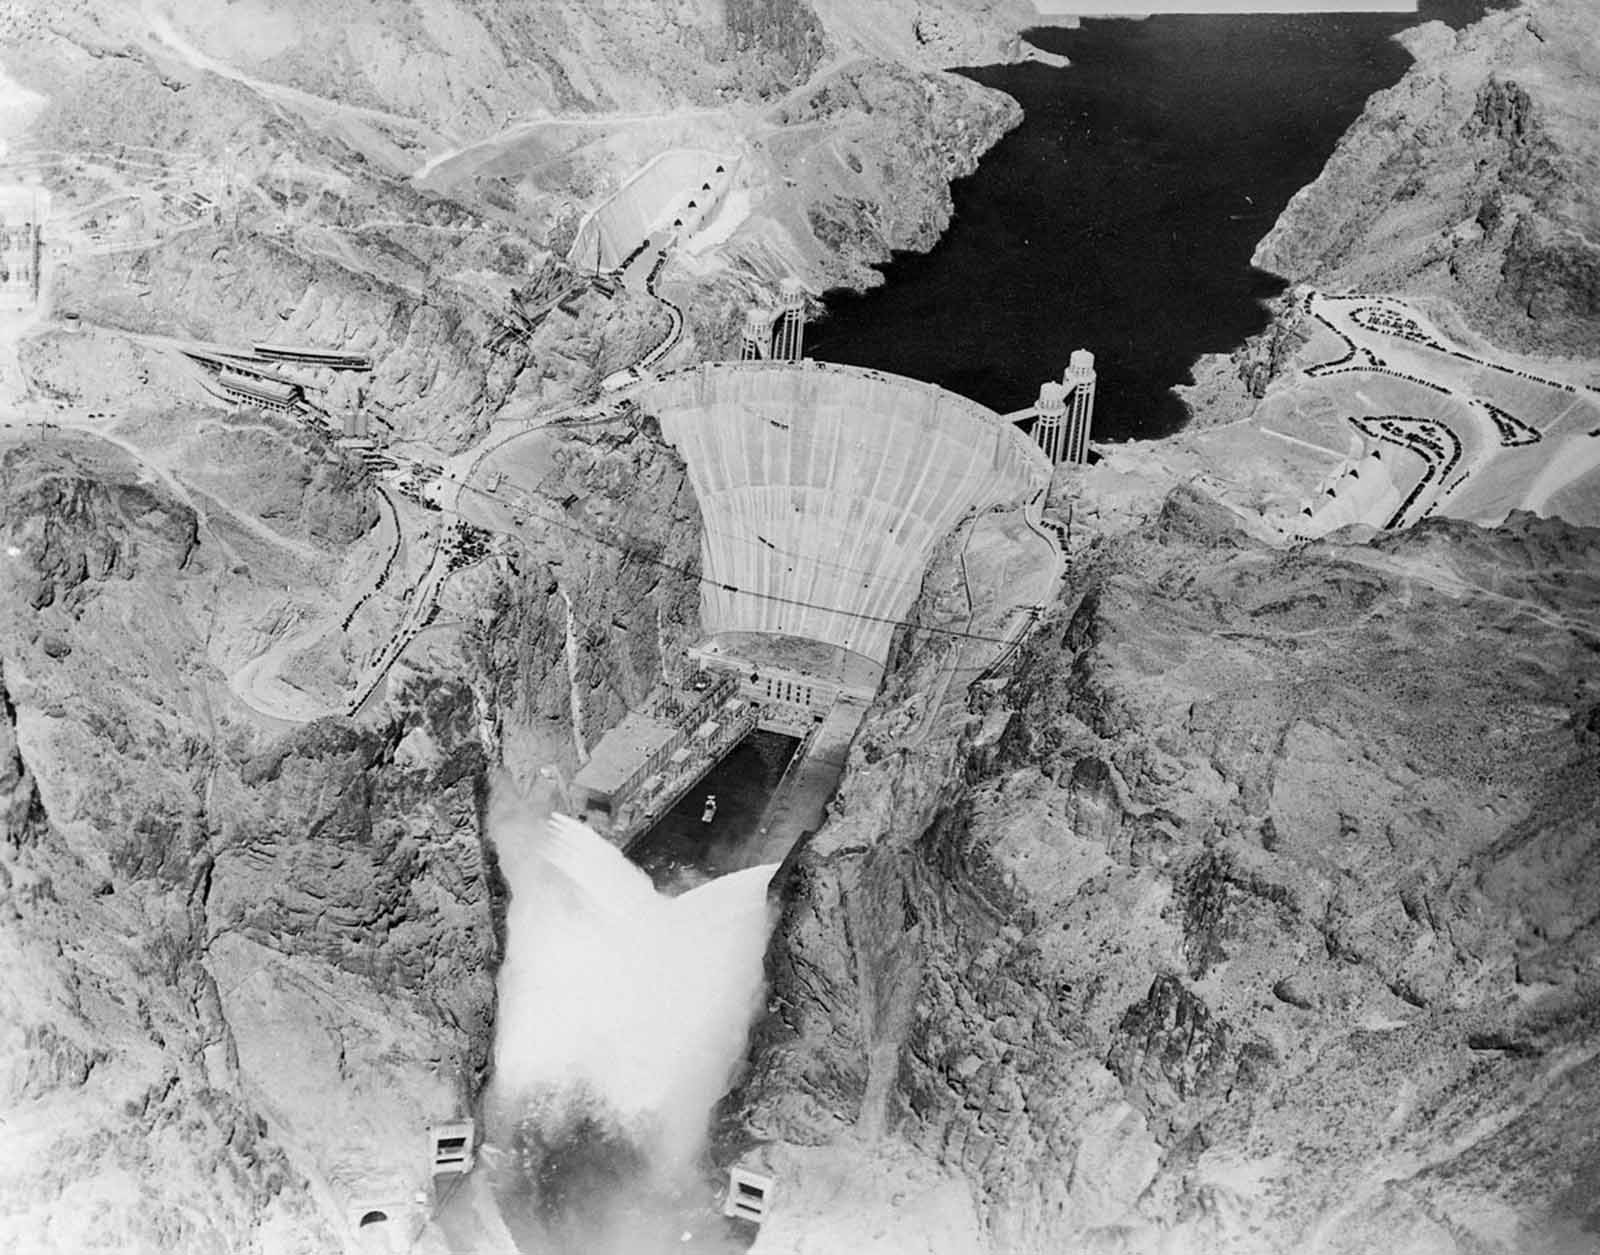 Hoover Dam was constructed between 1931 and 1936 during the Great Depression and was dedicated on September 30, 1935, by President Franklin D. Roosevelt.